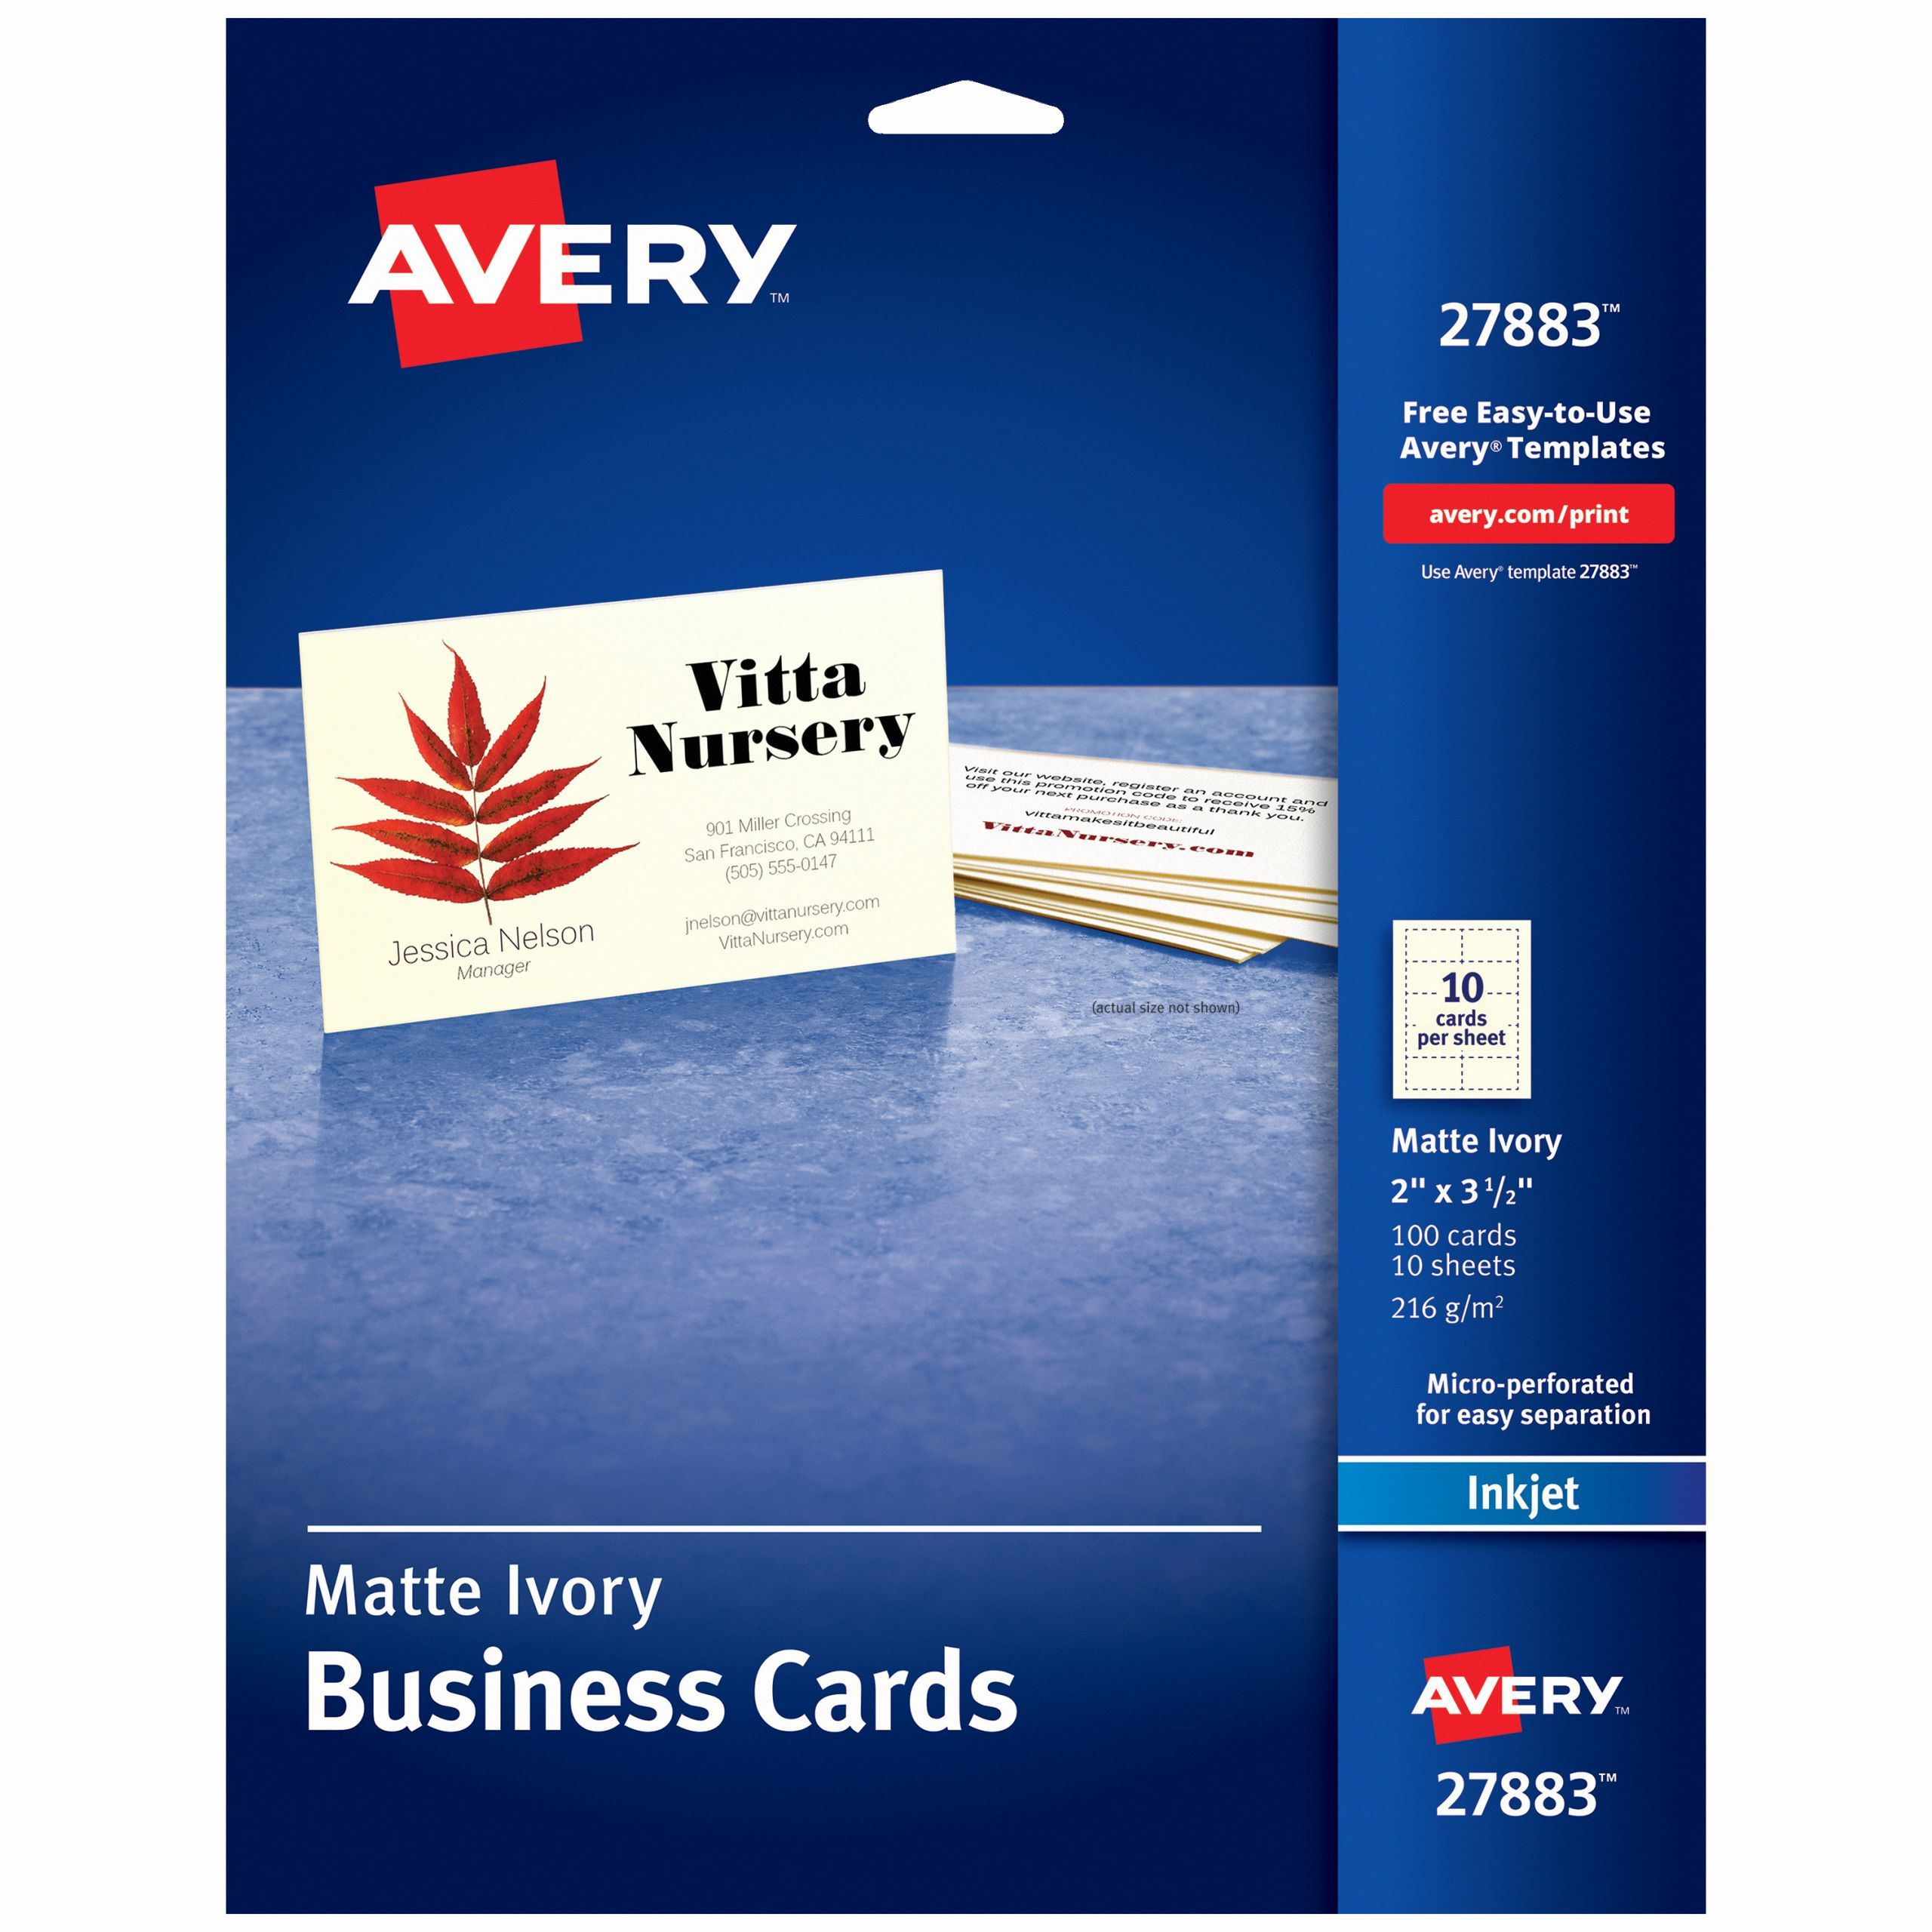 Avery 2 Round Labels Template Unique Avery Printable Business Cards Matte Ivory Two S In 2020 Printable Business Cards Avery Business Cards Business Card Template Word